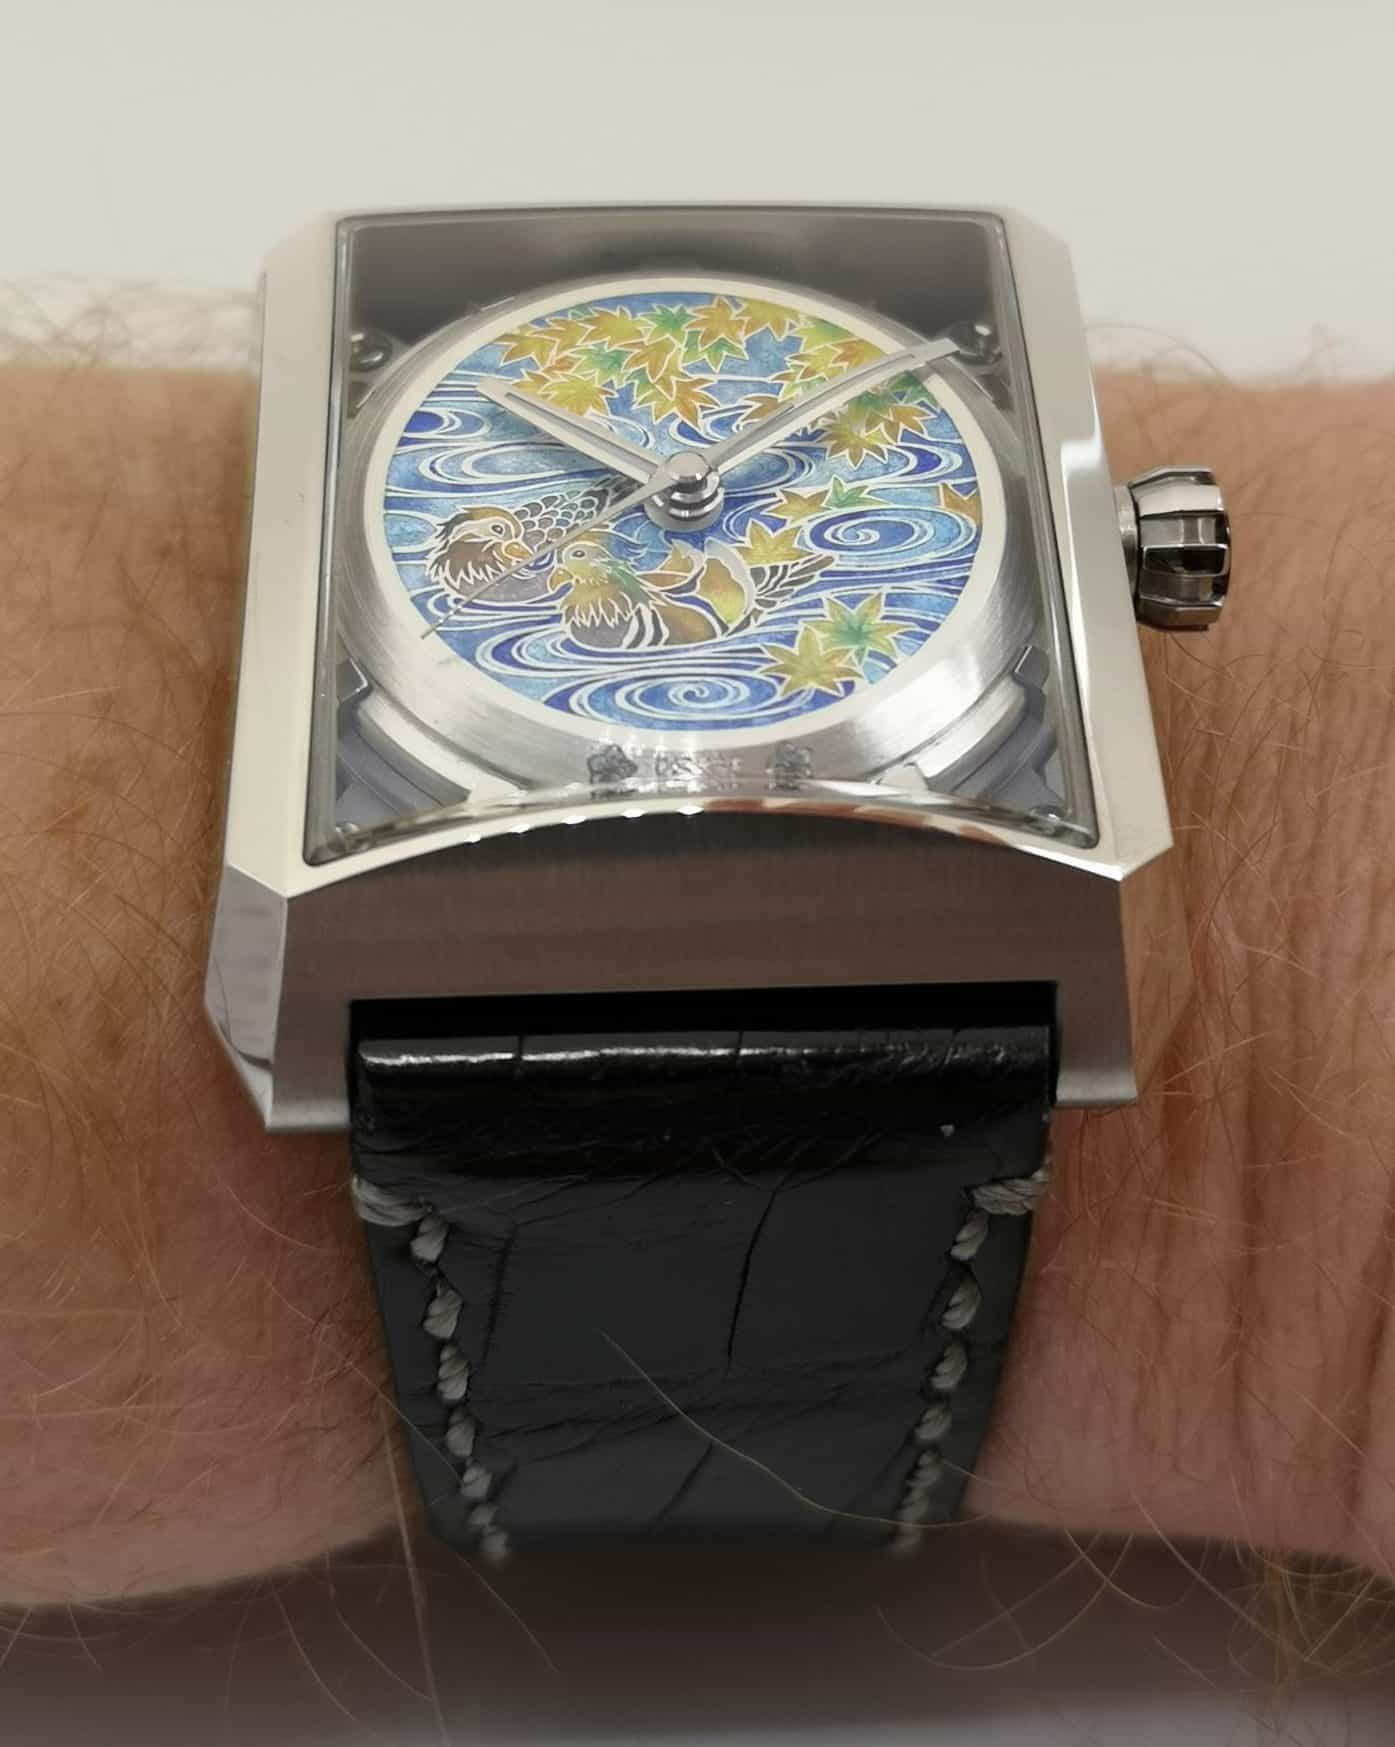 "Minase 5 Windows ""One"" Masterpiece on the Wrist"